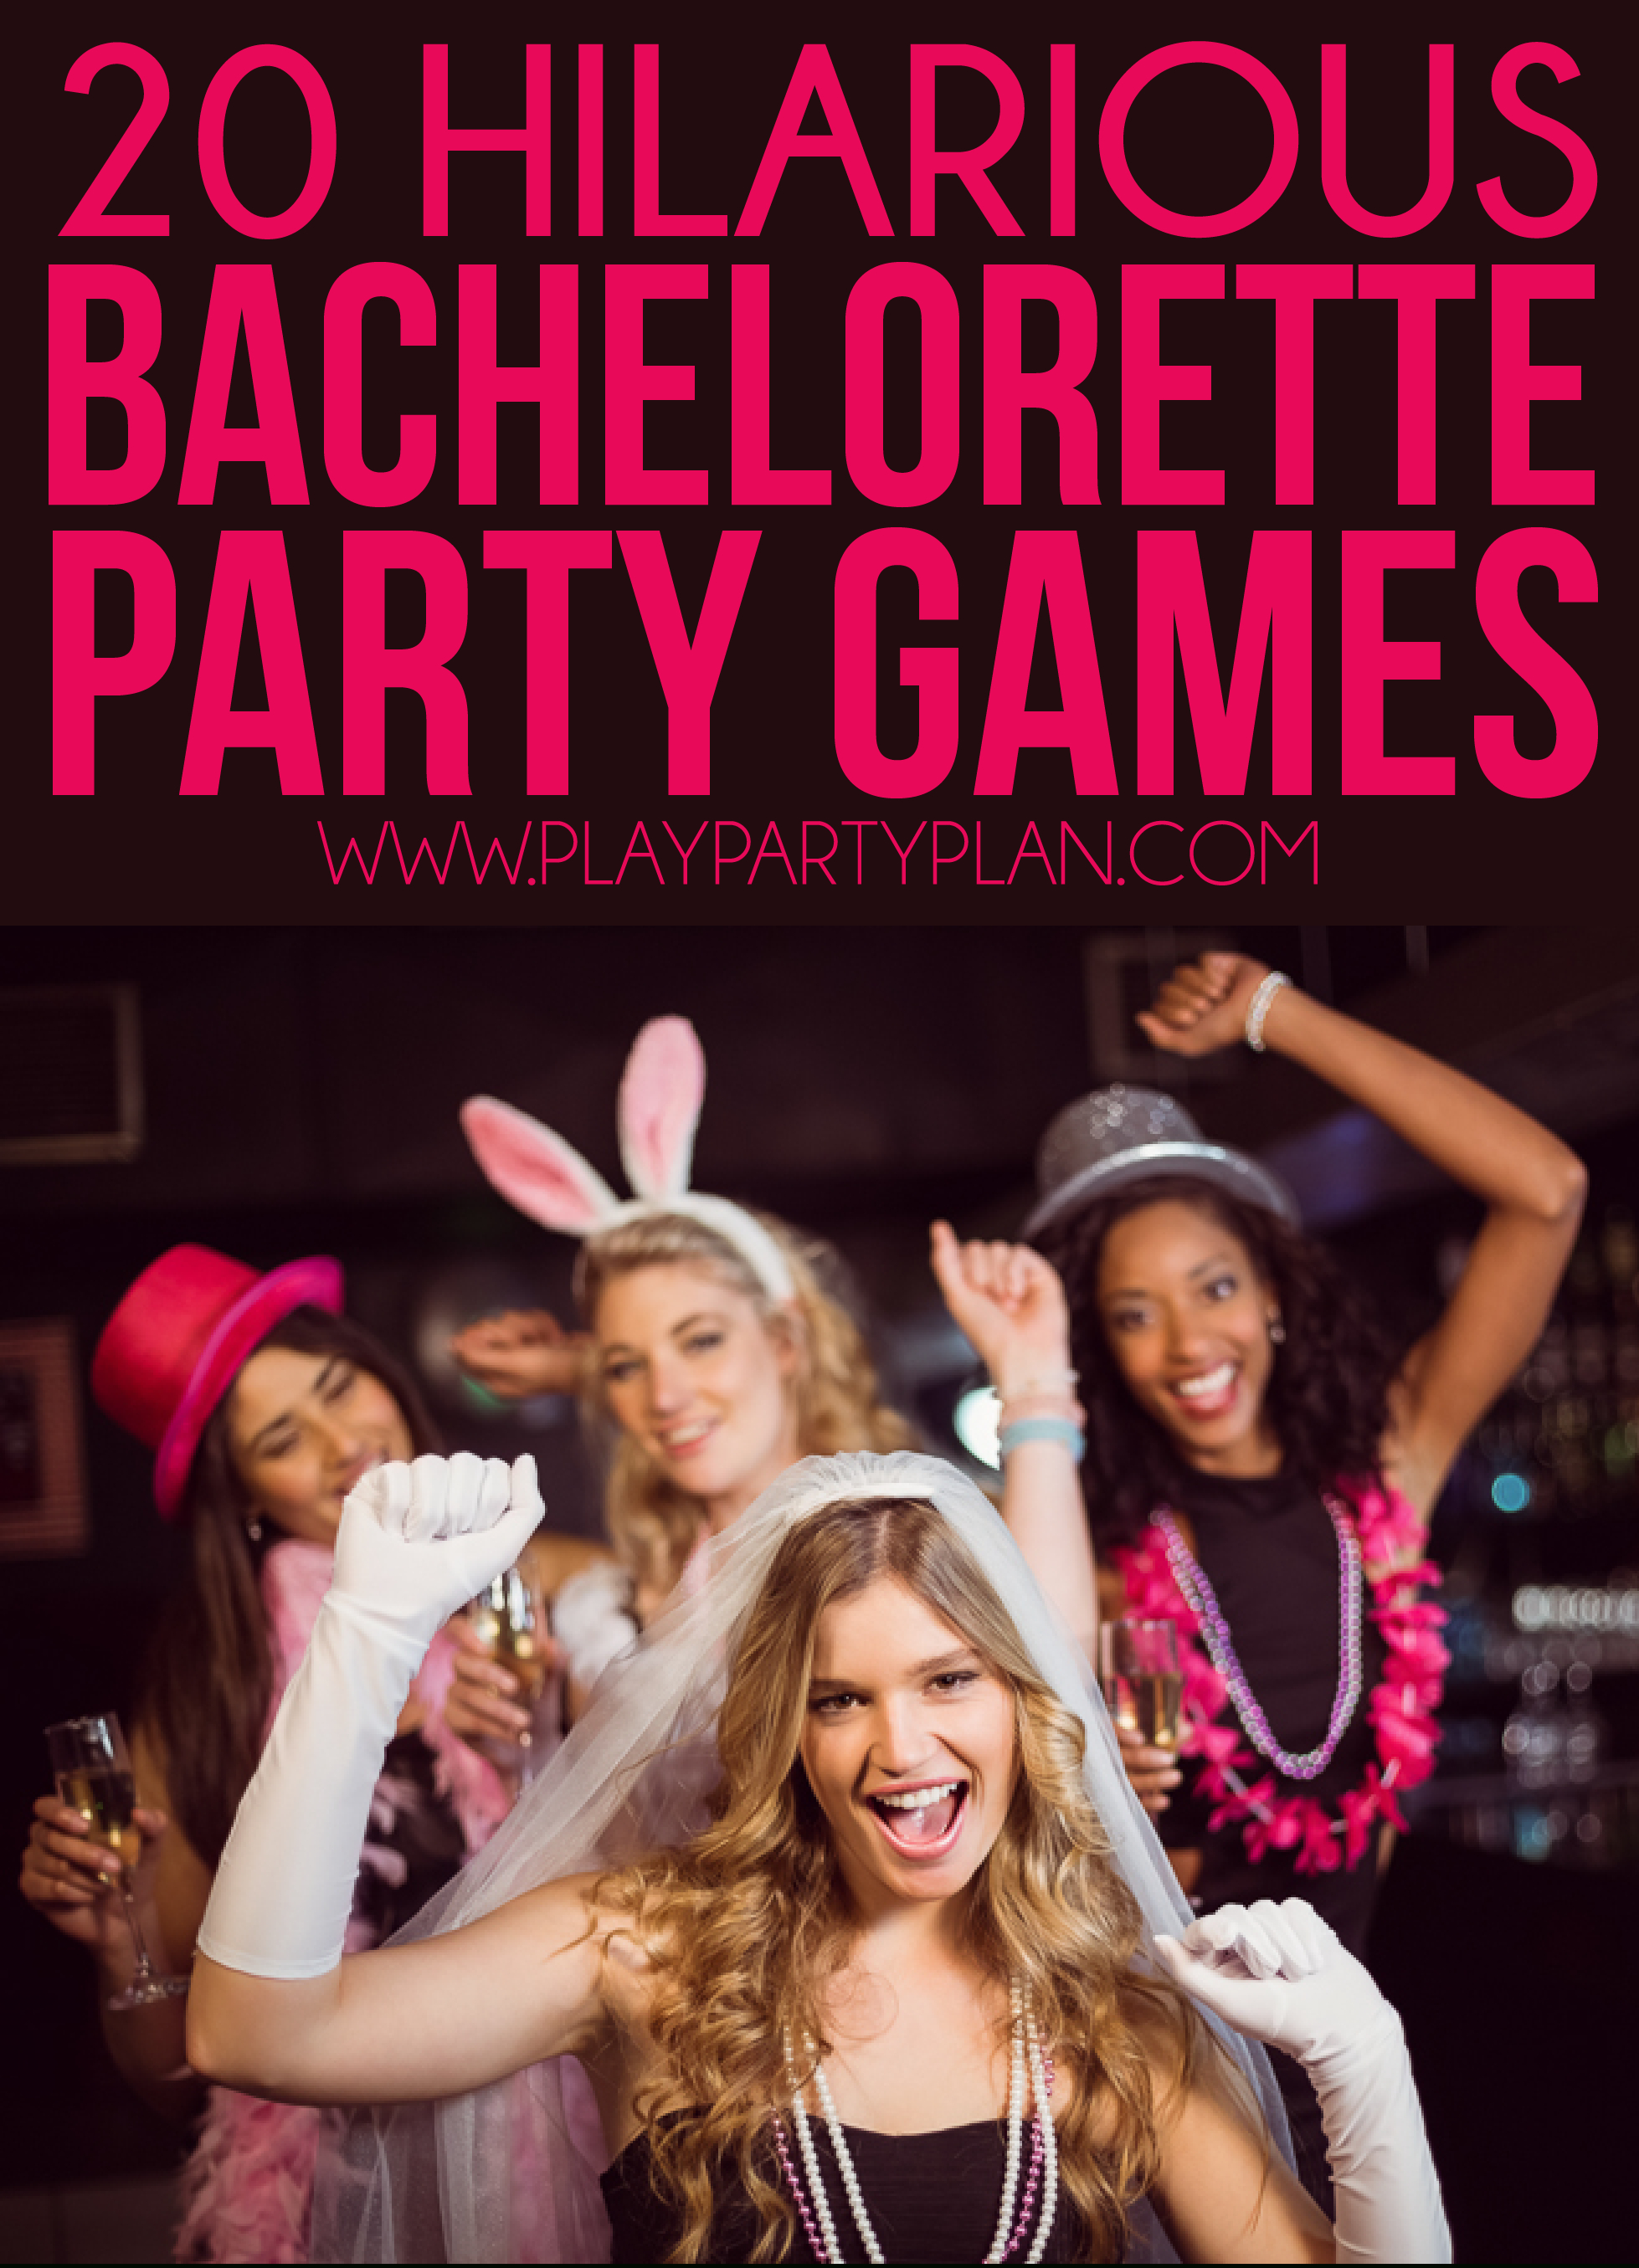 20 Hilarious Bachelorette Party Games That'll Have You Laughing All - Free Printable Bachelorette Party Games